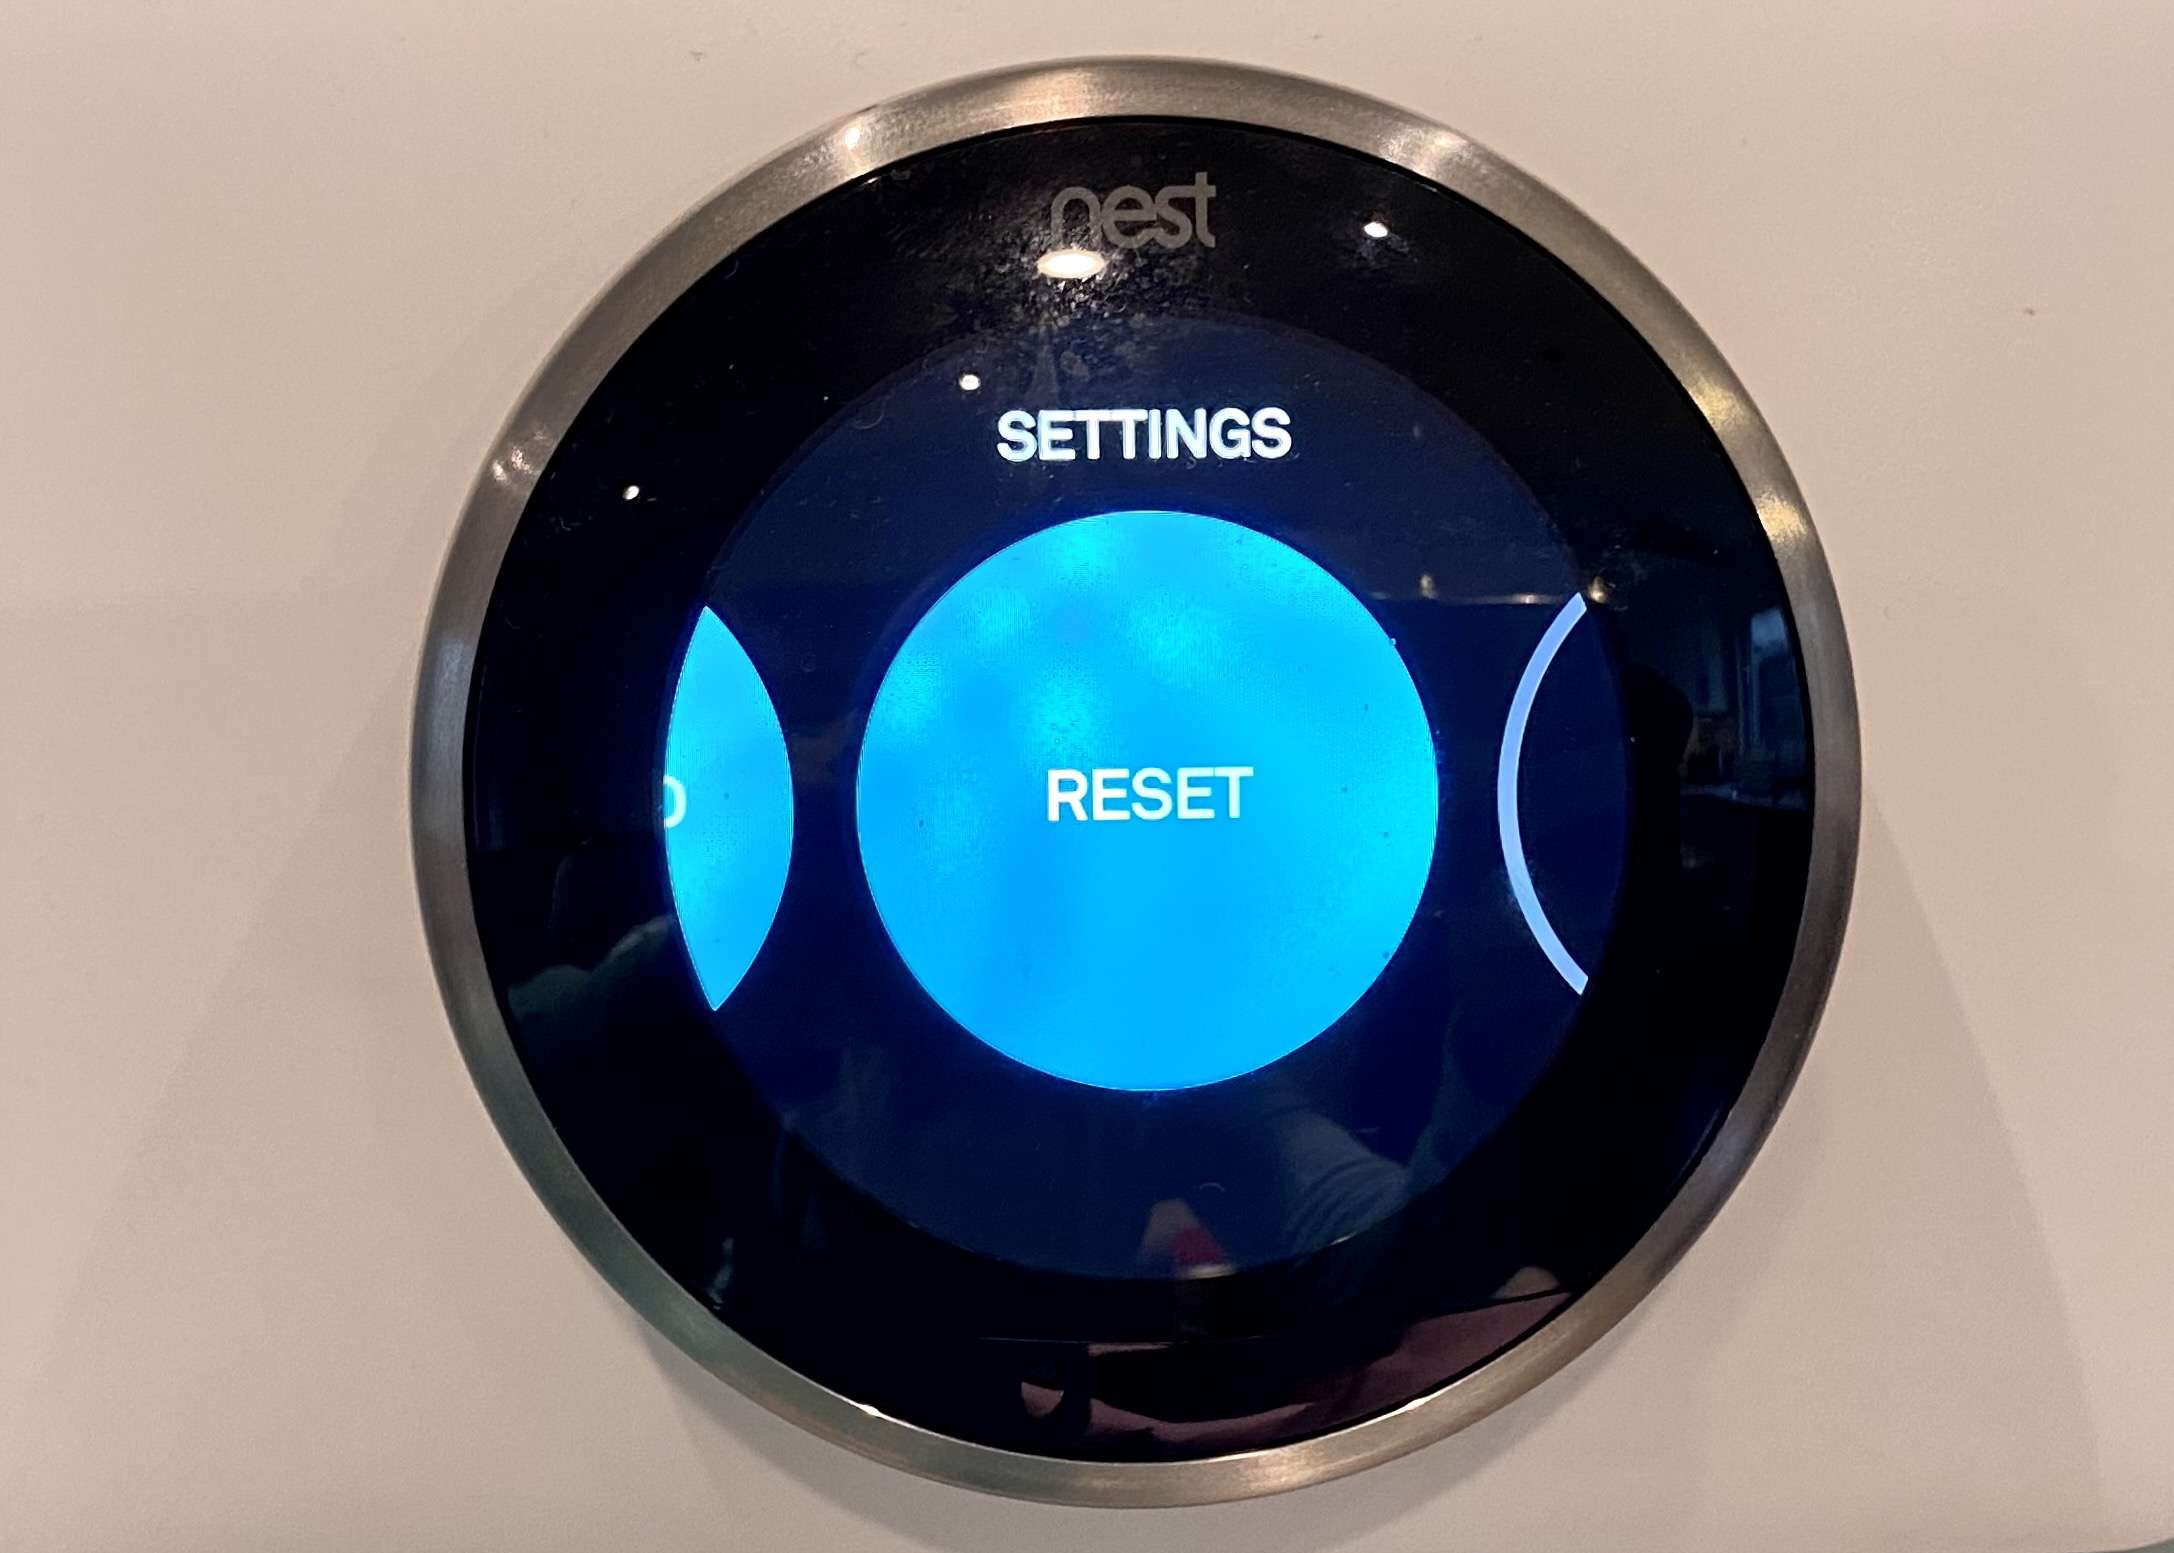 The menu on the Nest thermostat showing Reset.